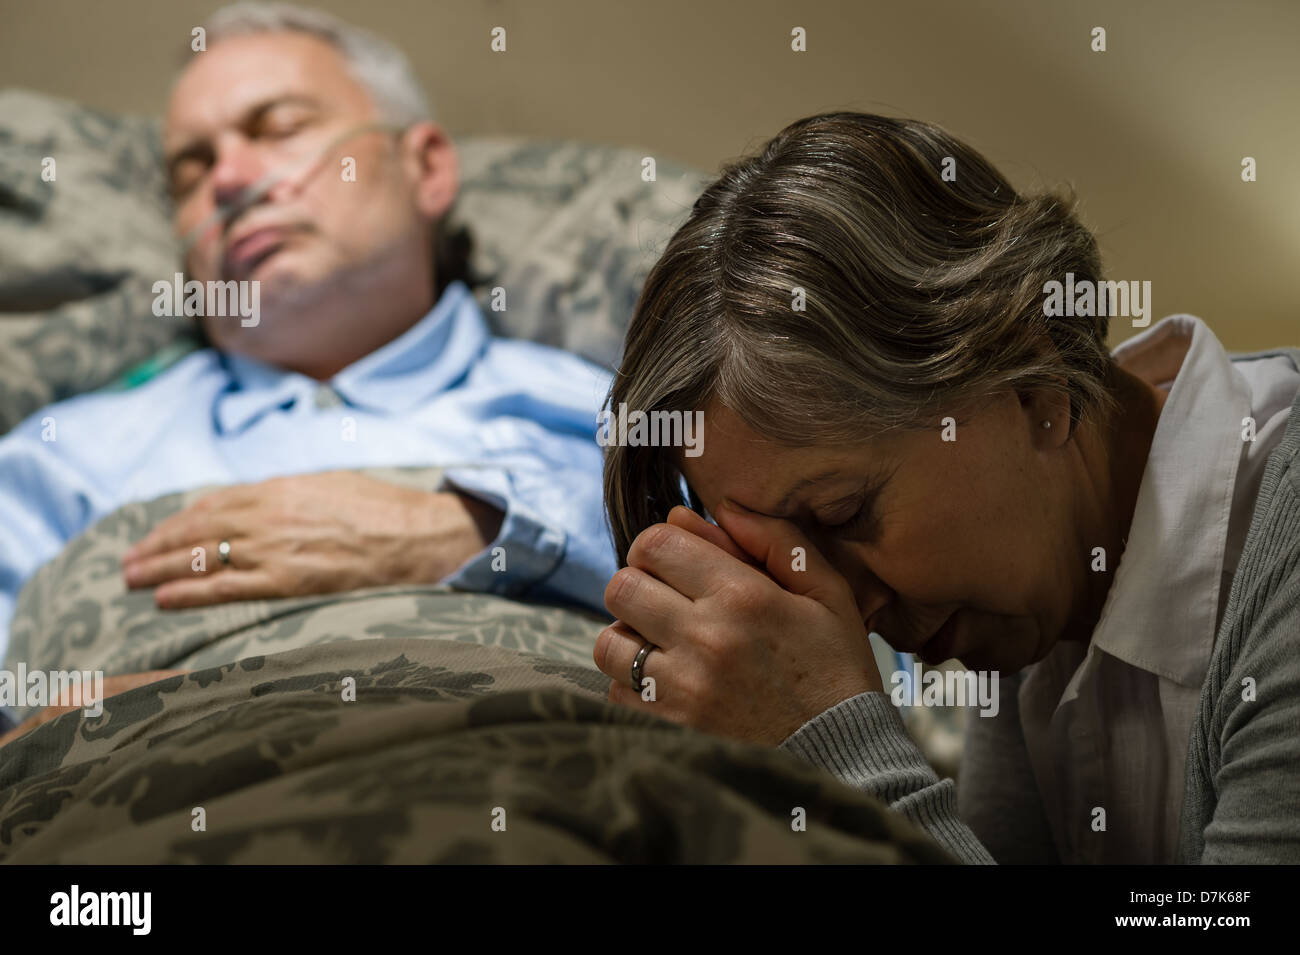 Senior woman praying for sick man sleeping in hospital bed - Stock Image